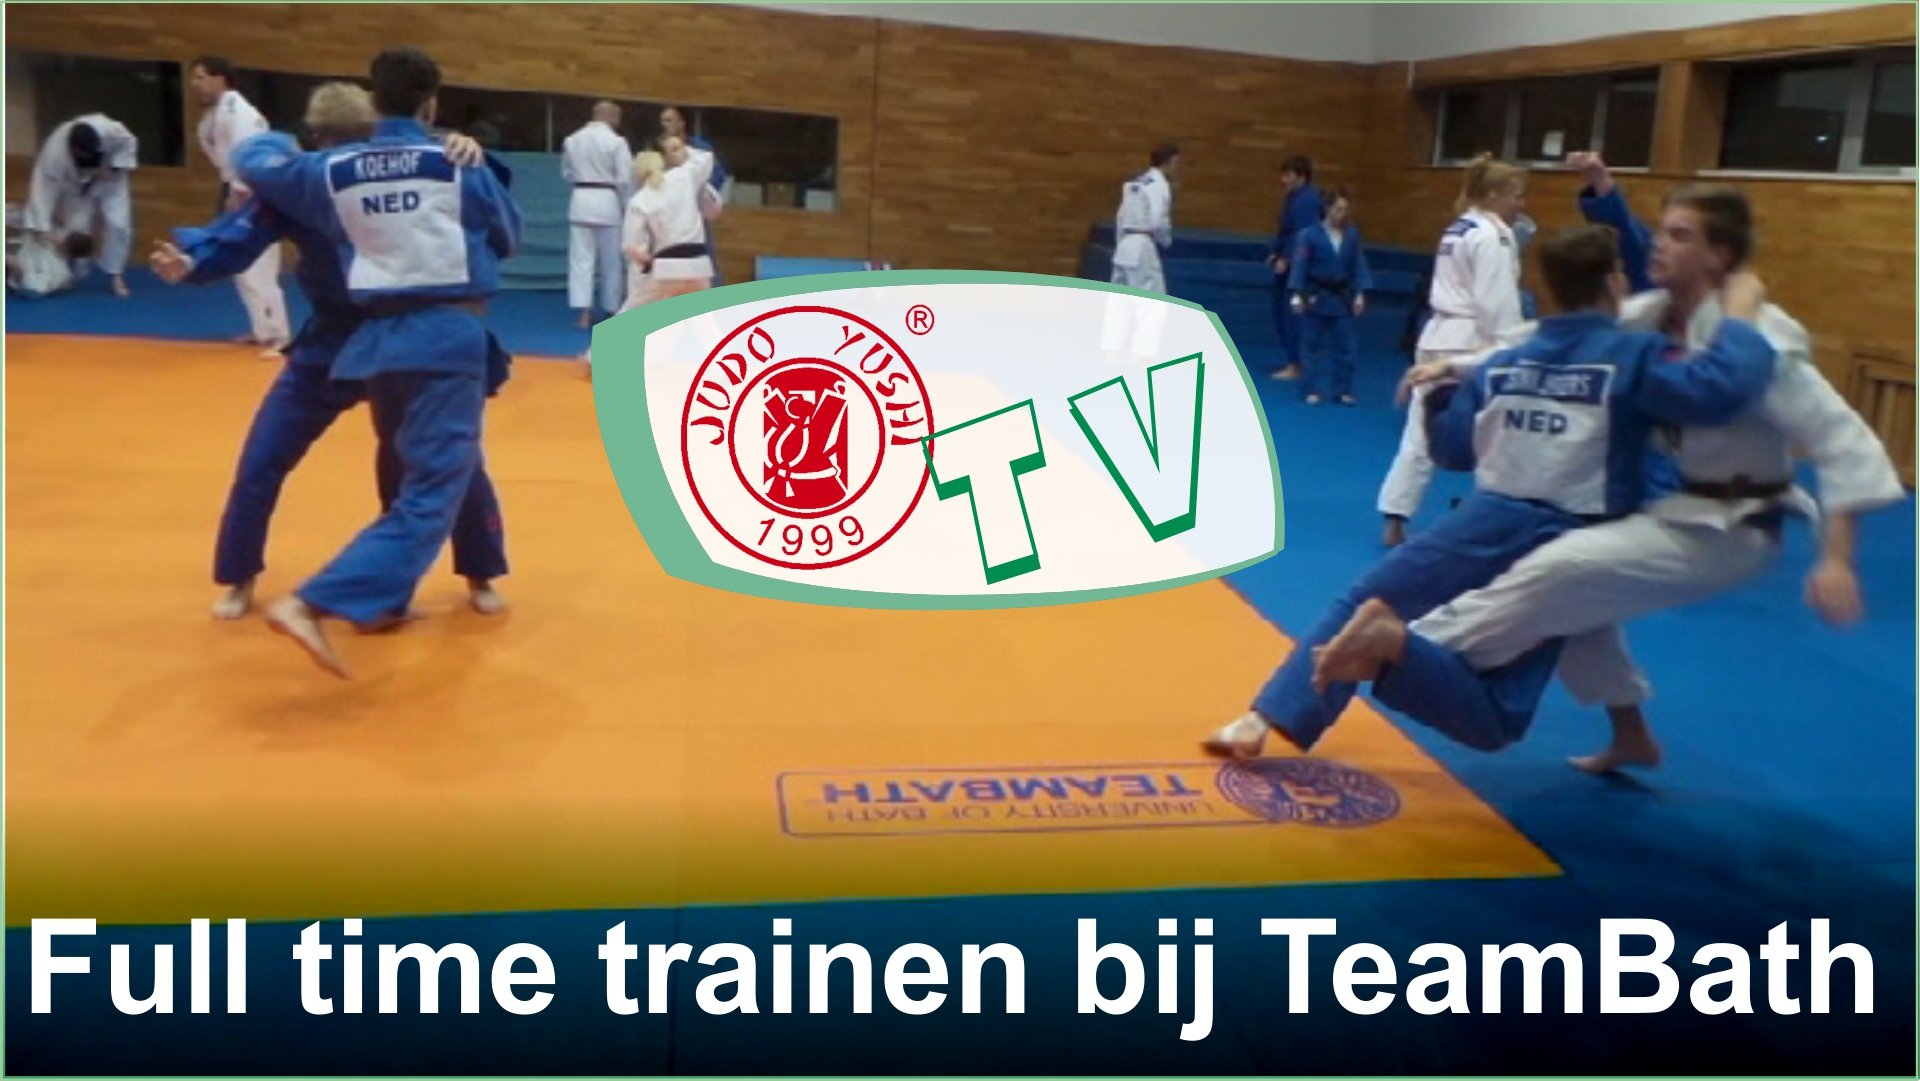 Judo Yushi traint week full time bij Team Bath